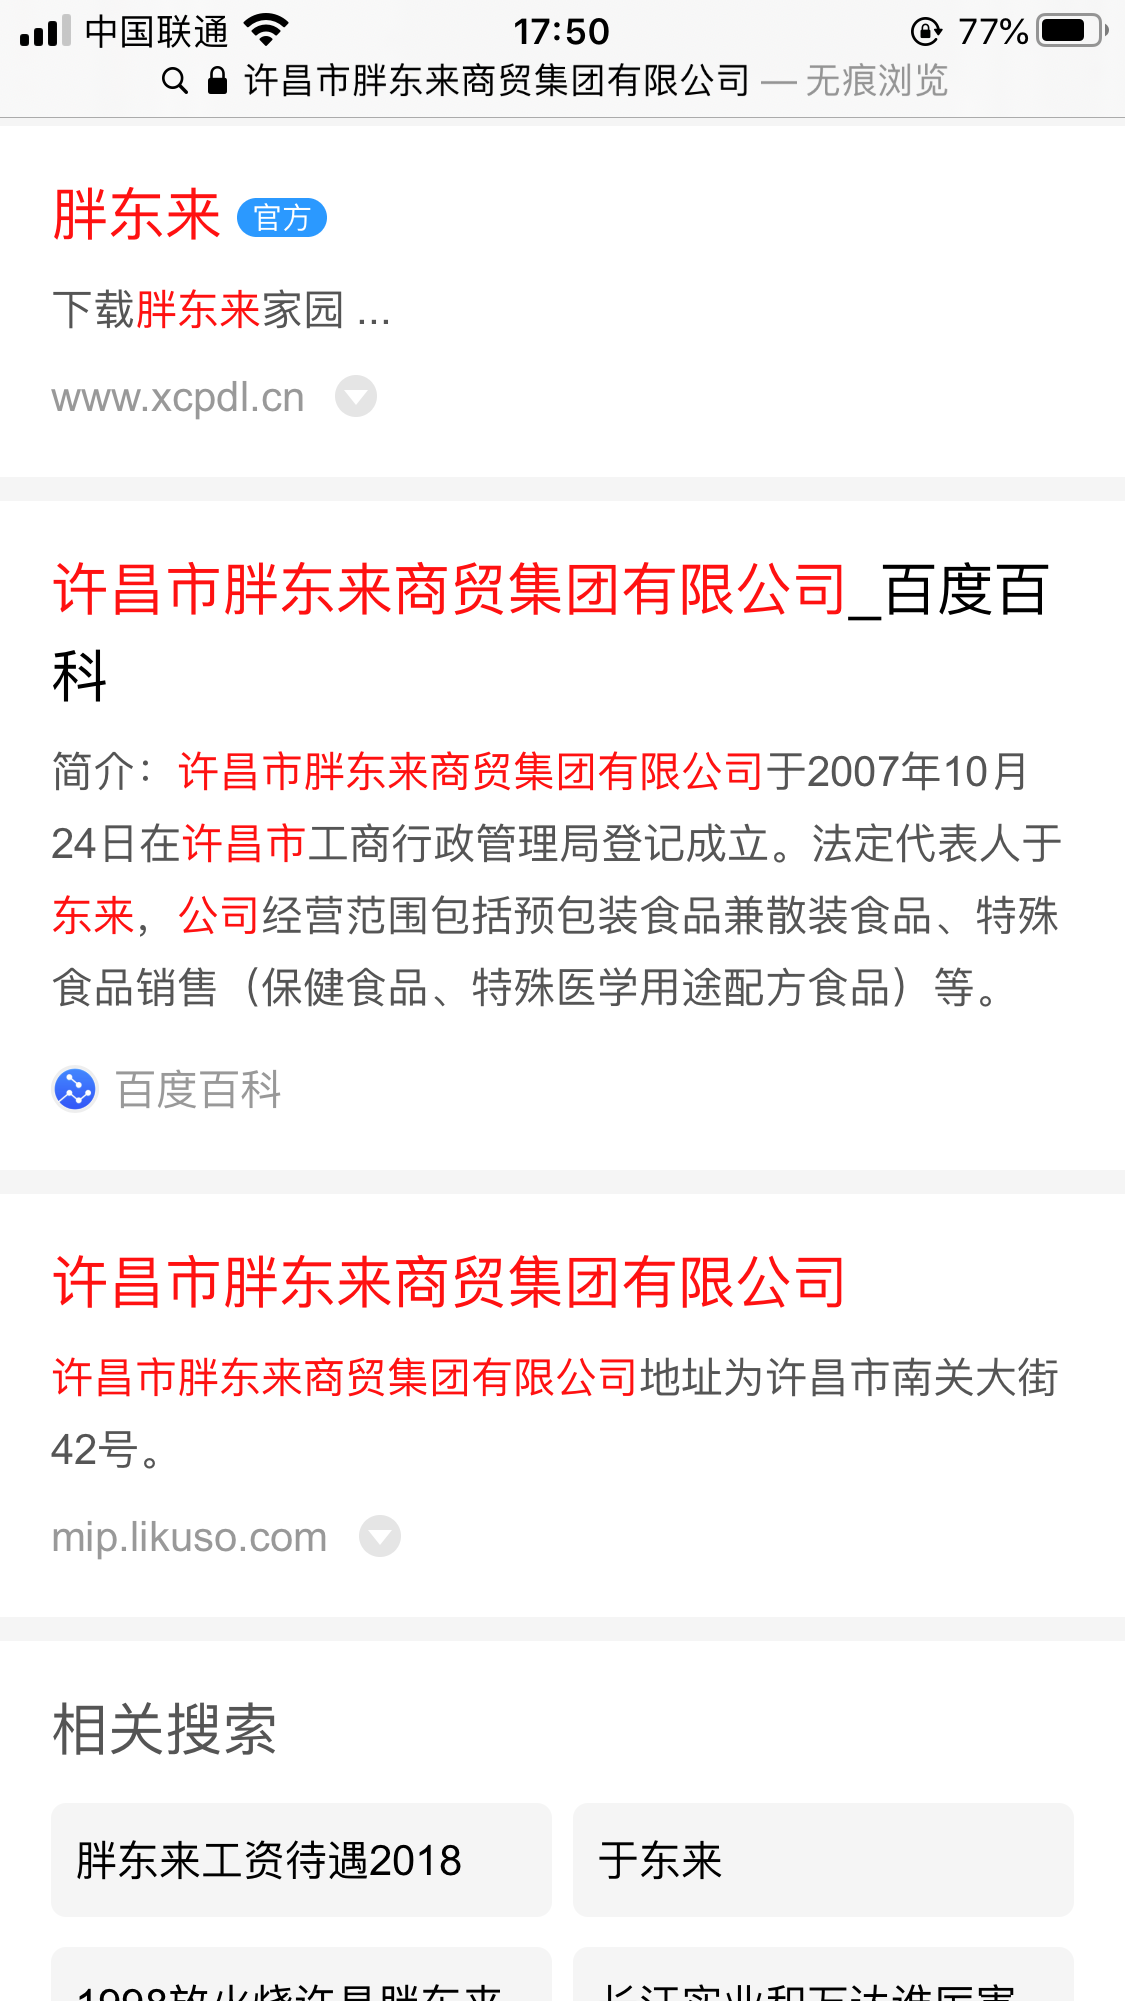 认证项目:百度实名实网认证;百度官网认证;百度商标认证